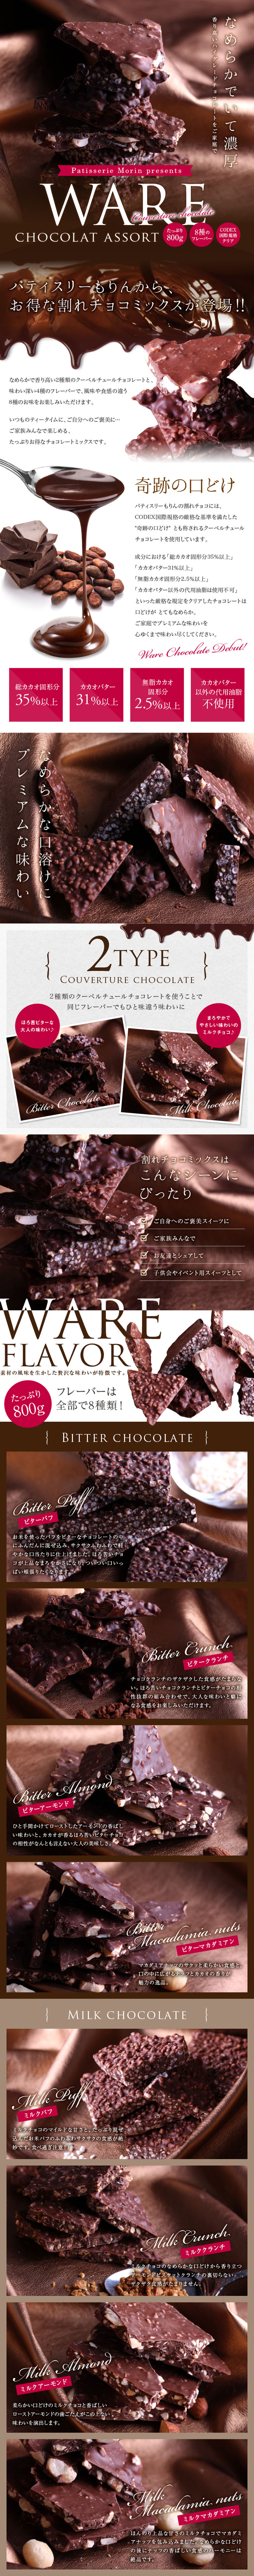 WARE CHOCOLATE ASSORT